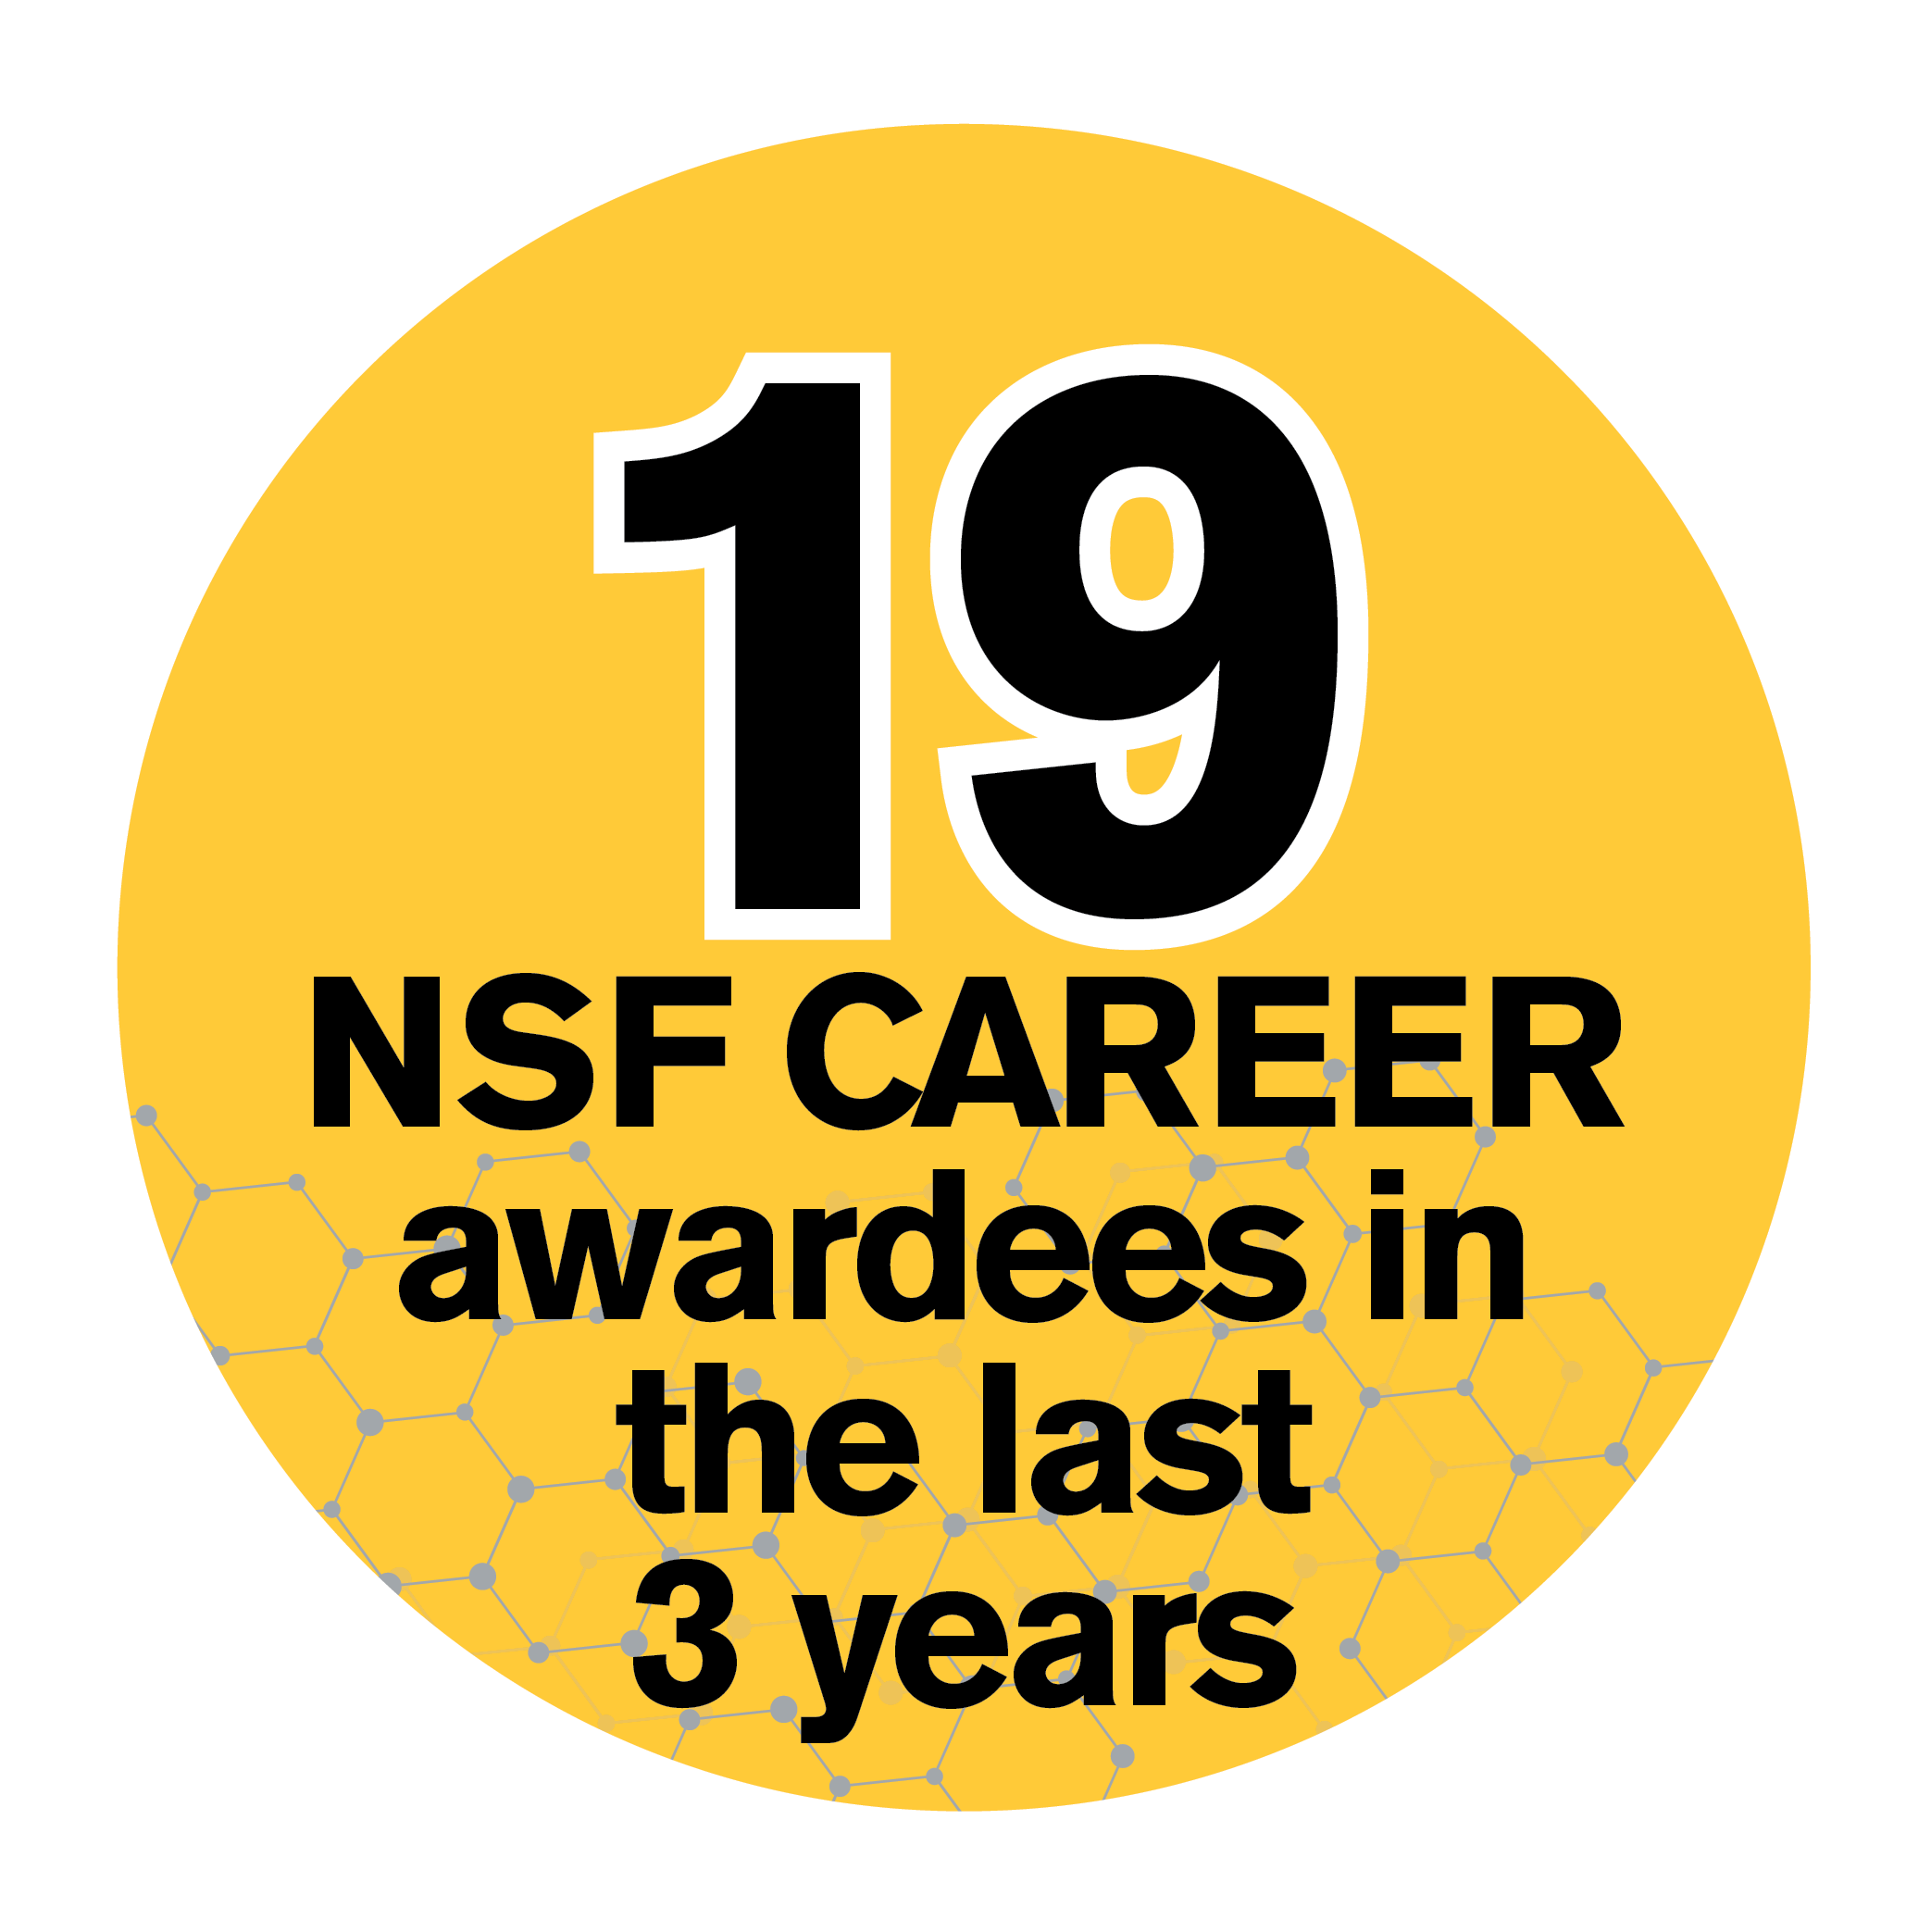 19 NSF CAREER awardees in the last 3 years